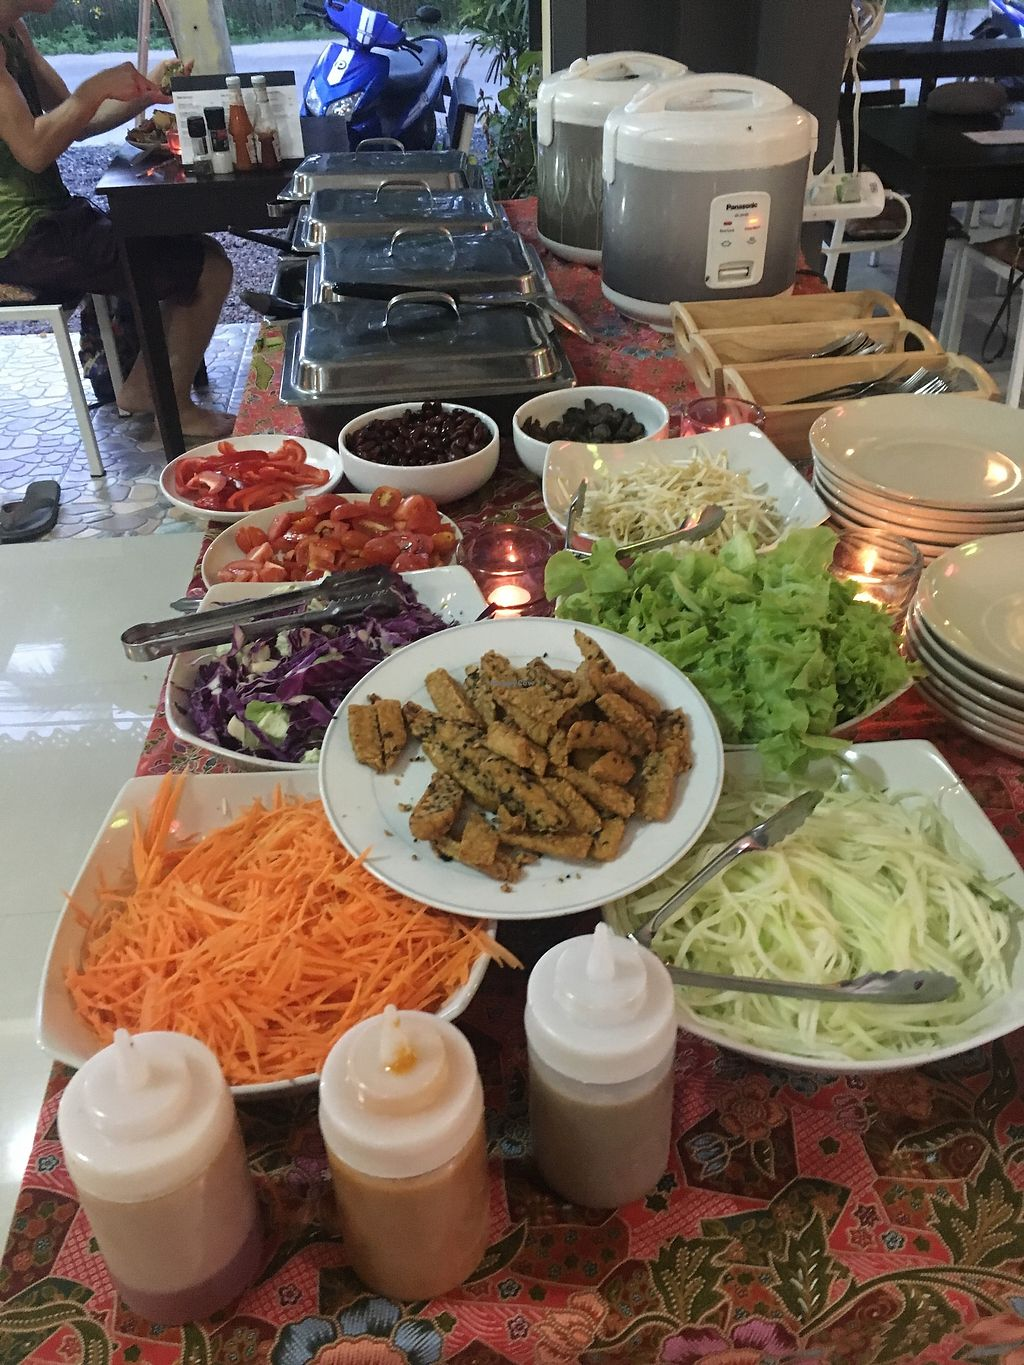 """Photo of Art of Juice  by <a href=""""/members/profile/Art%20of%20Juice"""">Art of Juice</a> <br/>We offer Asian foods buffet and Vegetarian vegan salad ?  <br/> December 3, 2017  - <a href='/contact/abuse/image/70419/331859'>Report</a>"""